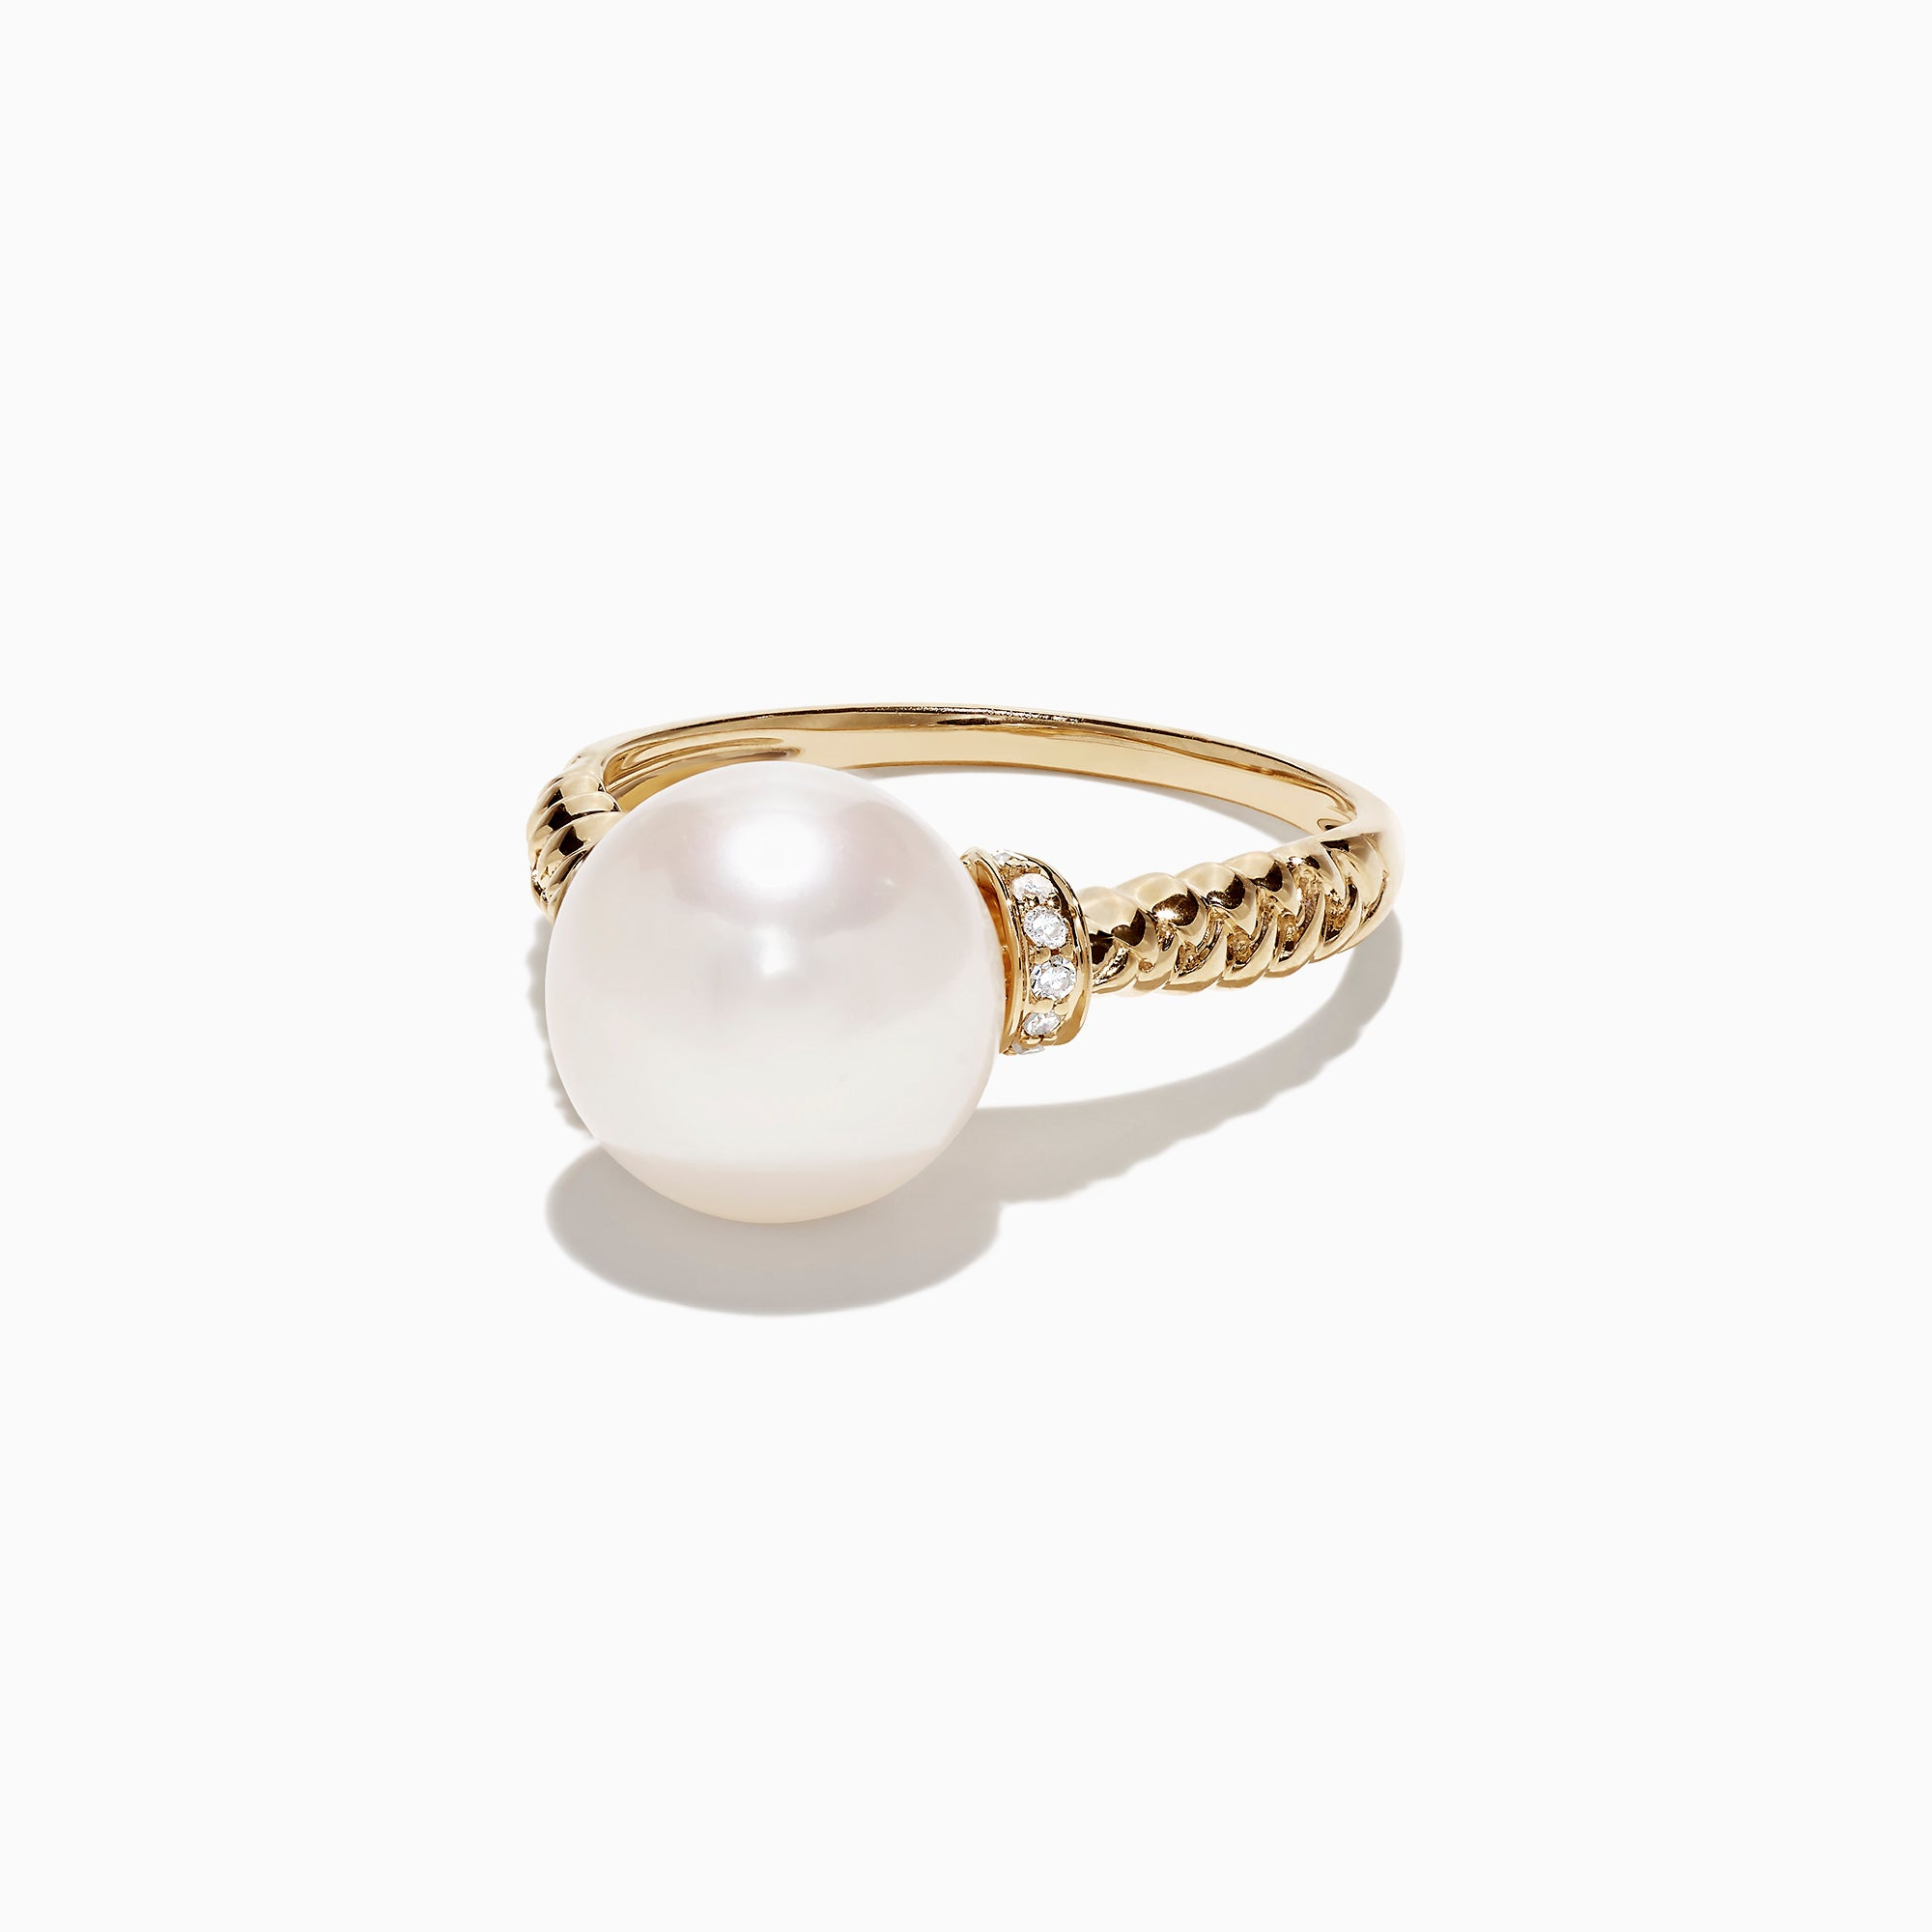 Effy 14K Yellow Gold Cultured Fresh Water Pearl and Diamond Ring, 0.06 TCW